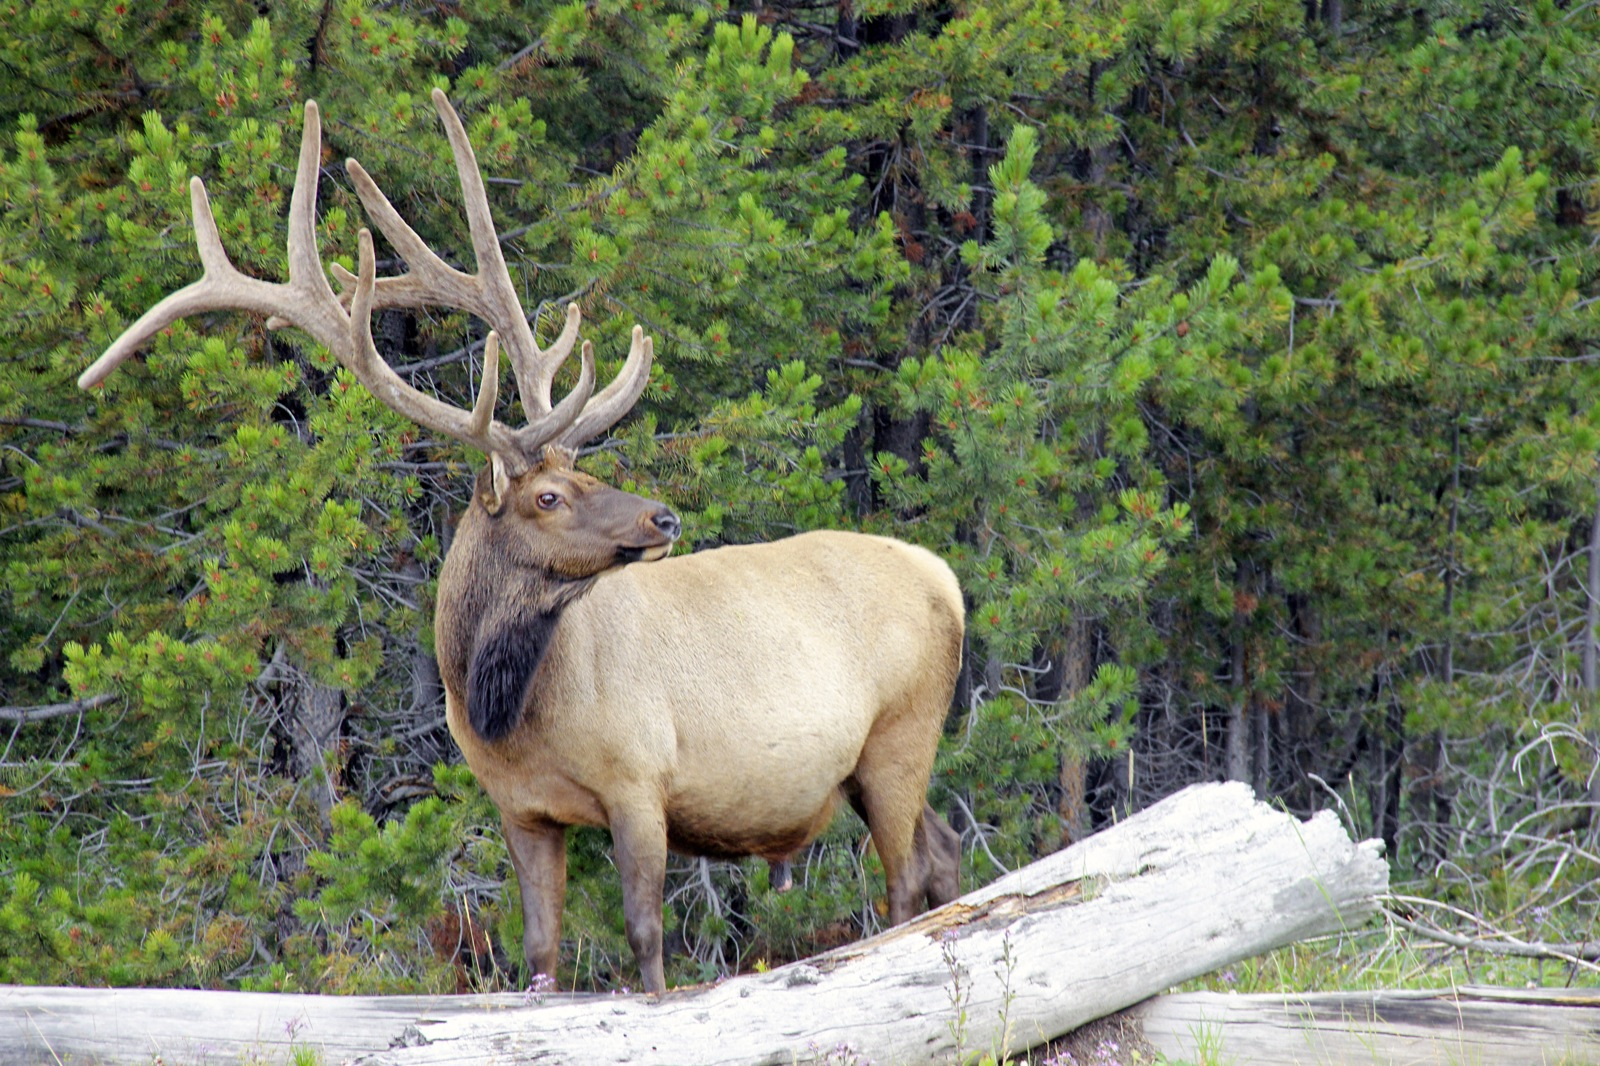 An up-close photo of an elk with his rack of antlers